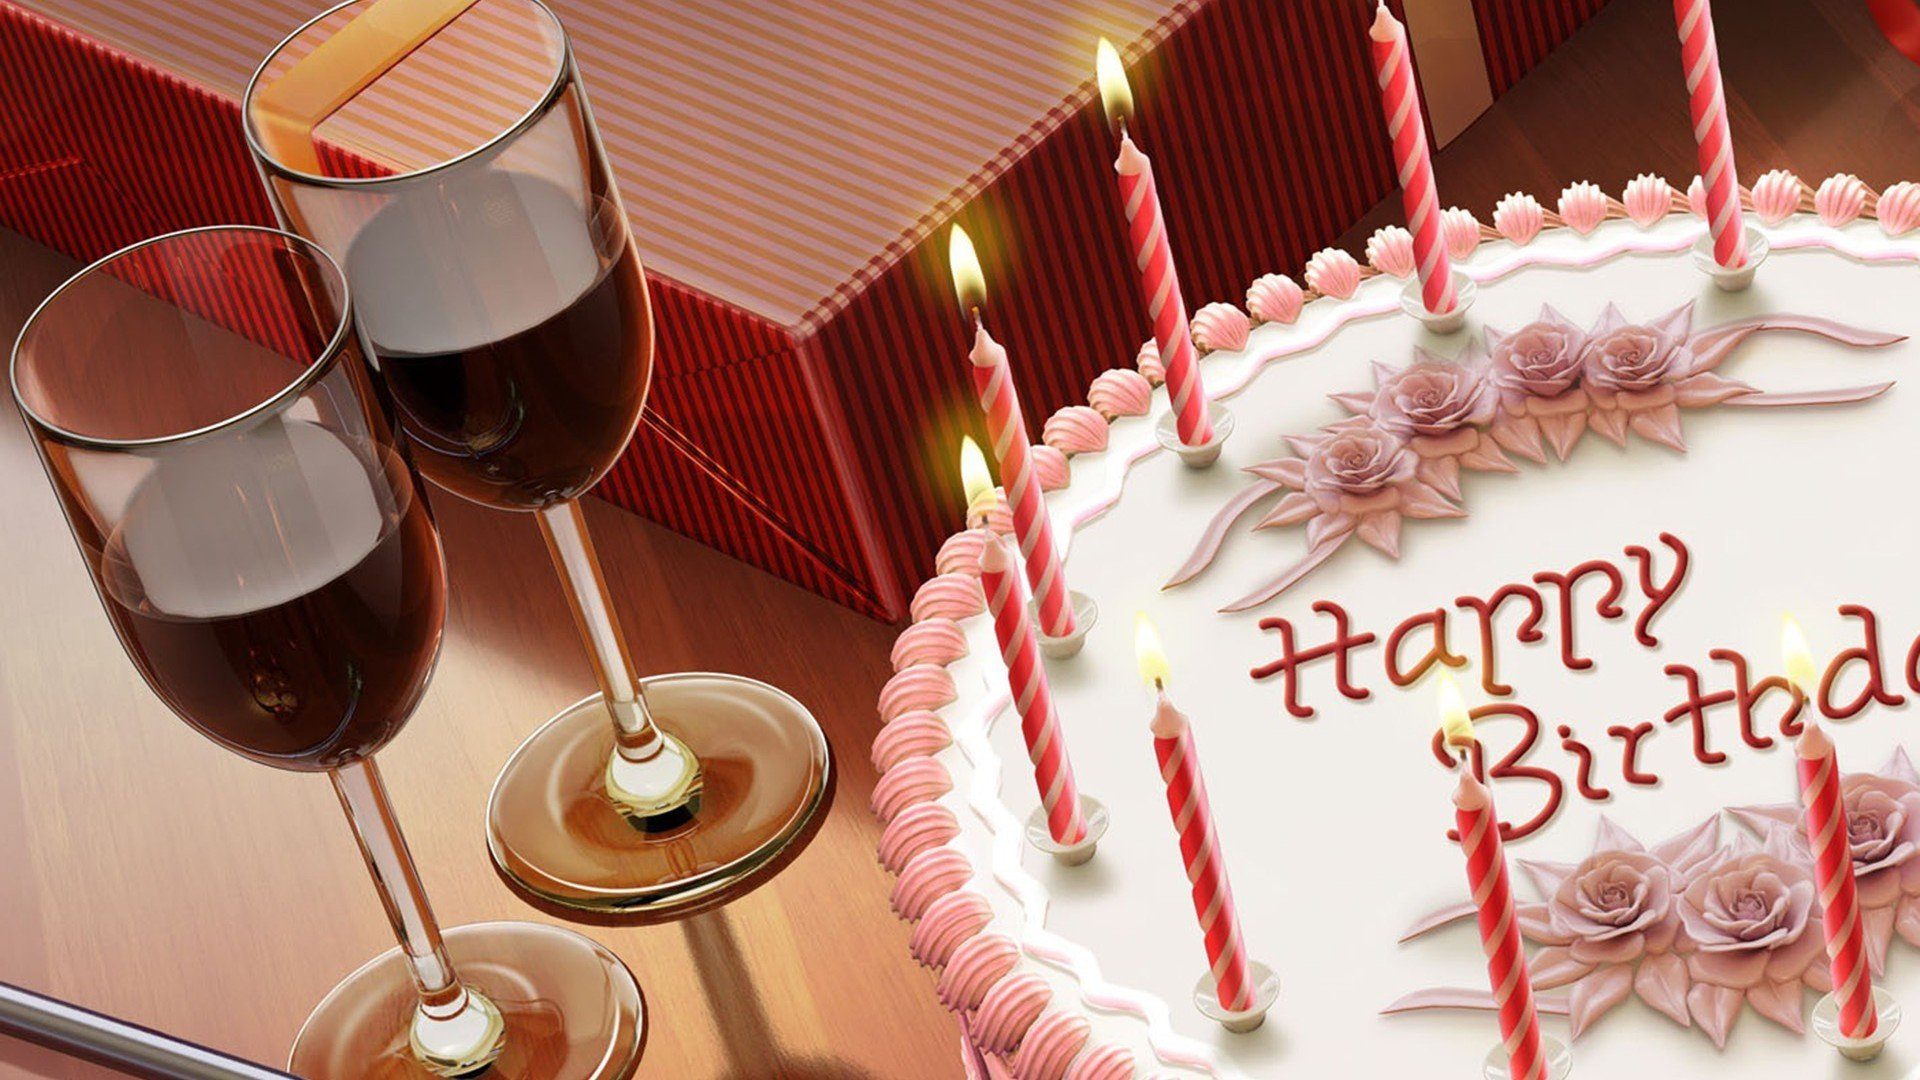 happy birthday hd images download ; flowers-happy-birthday-images-wallpapers-beautiful